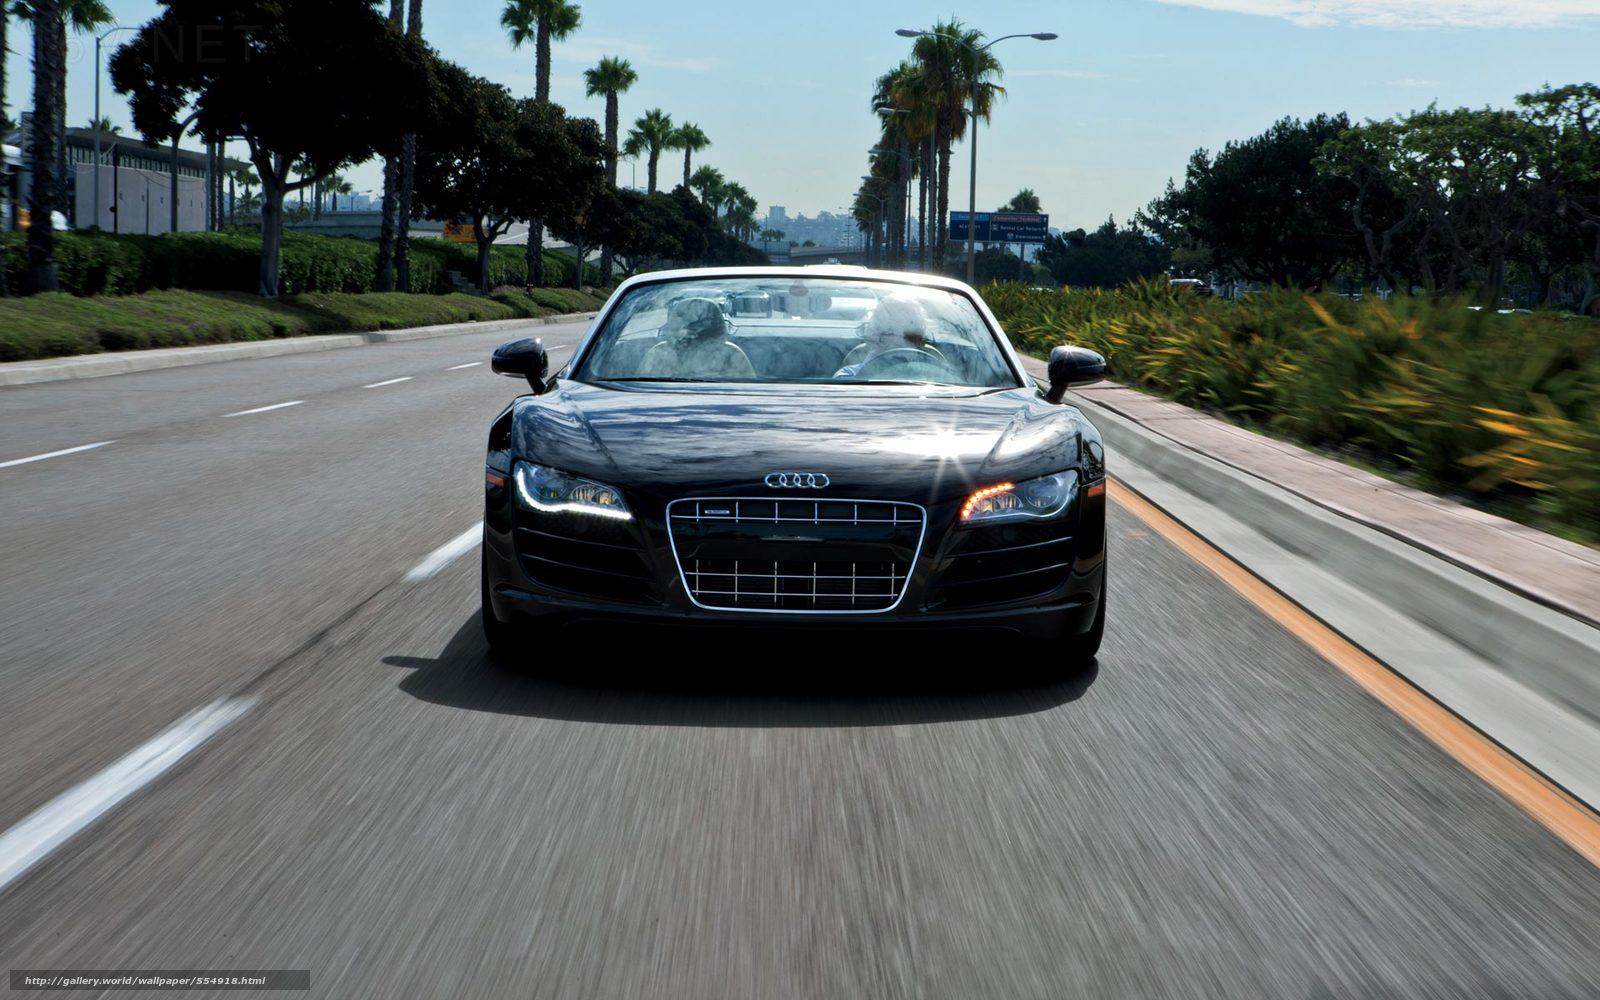 Download Wallpaper Audi R8 Spyder Audi Road Free